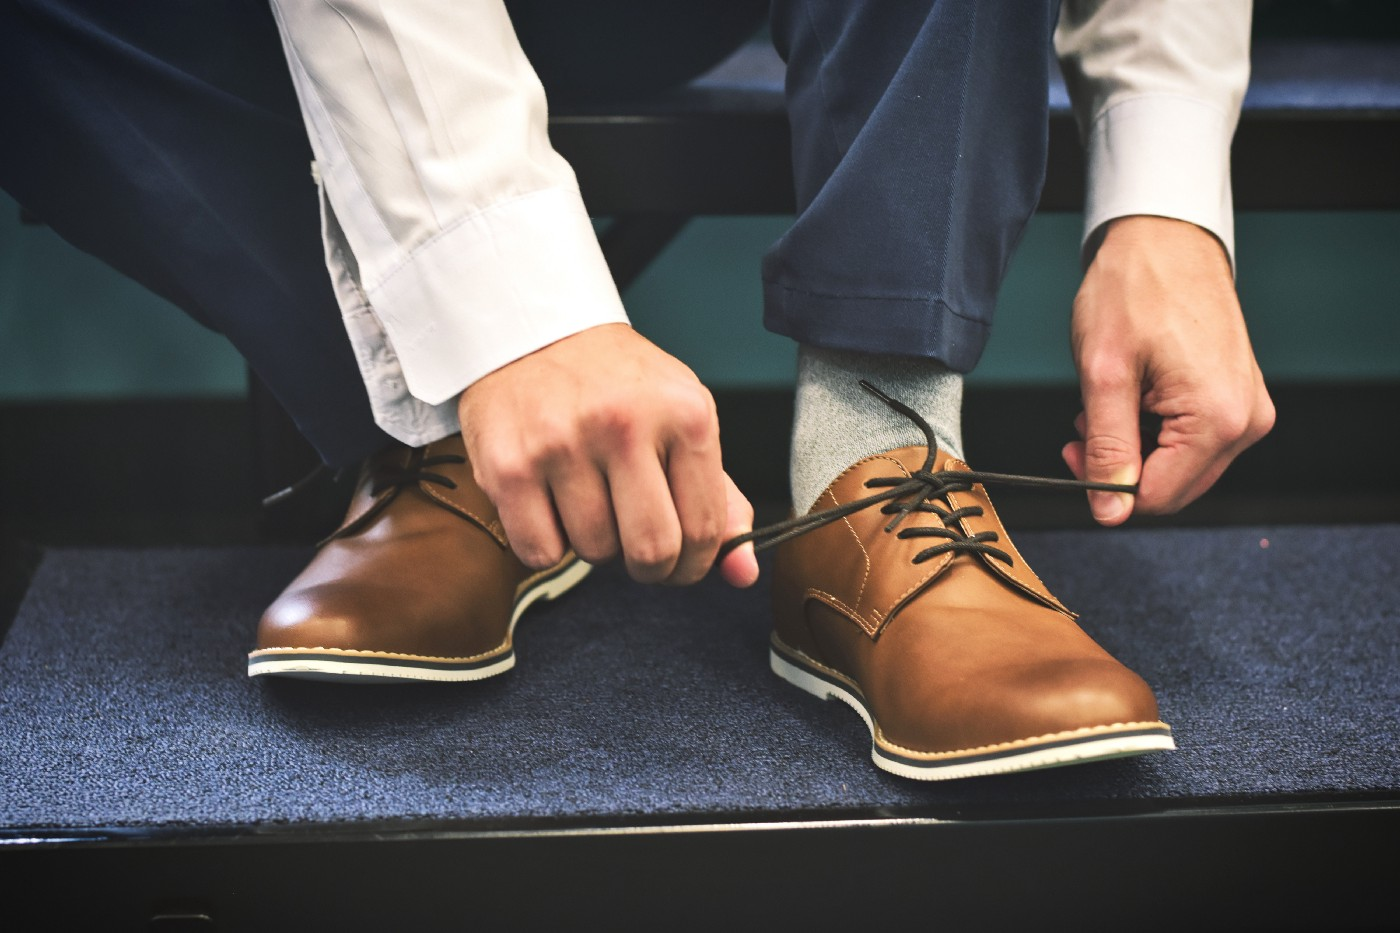 Man tying his laces